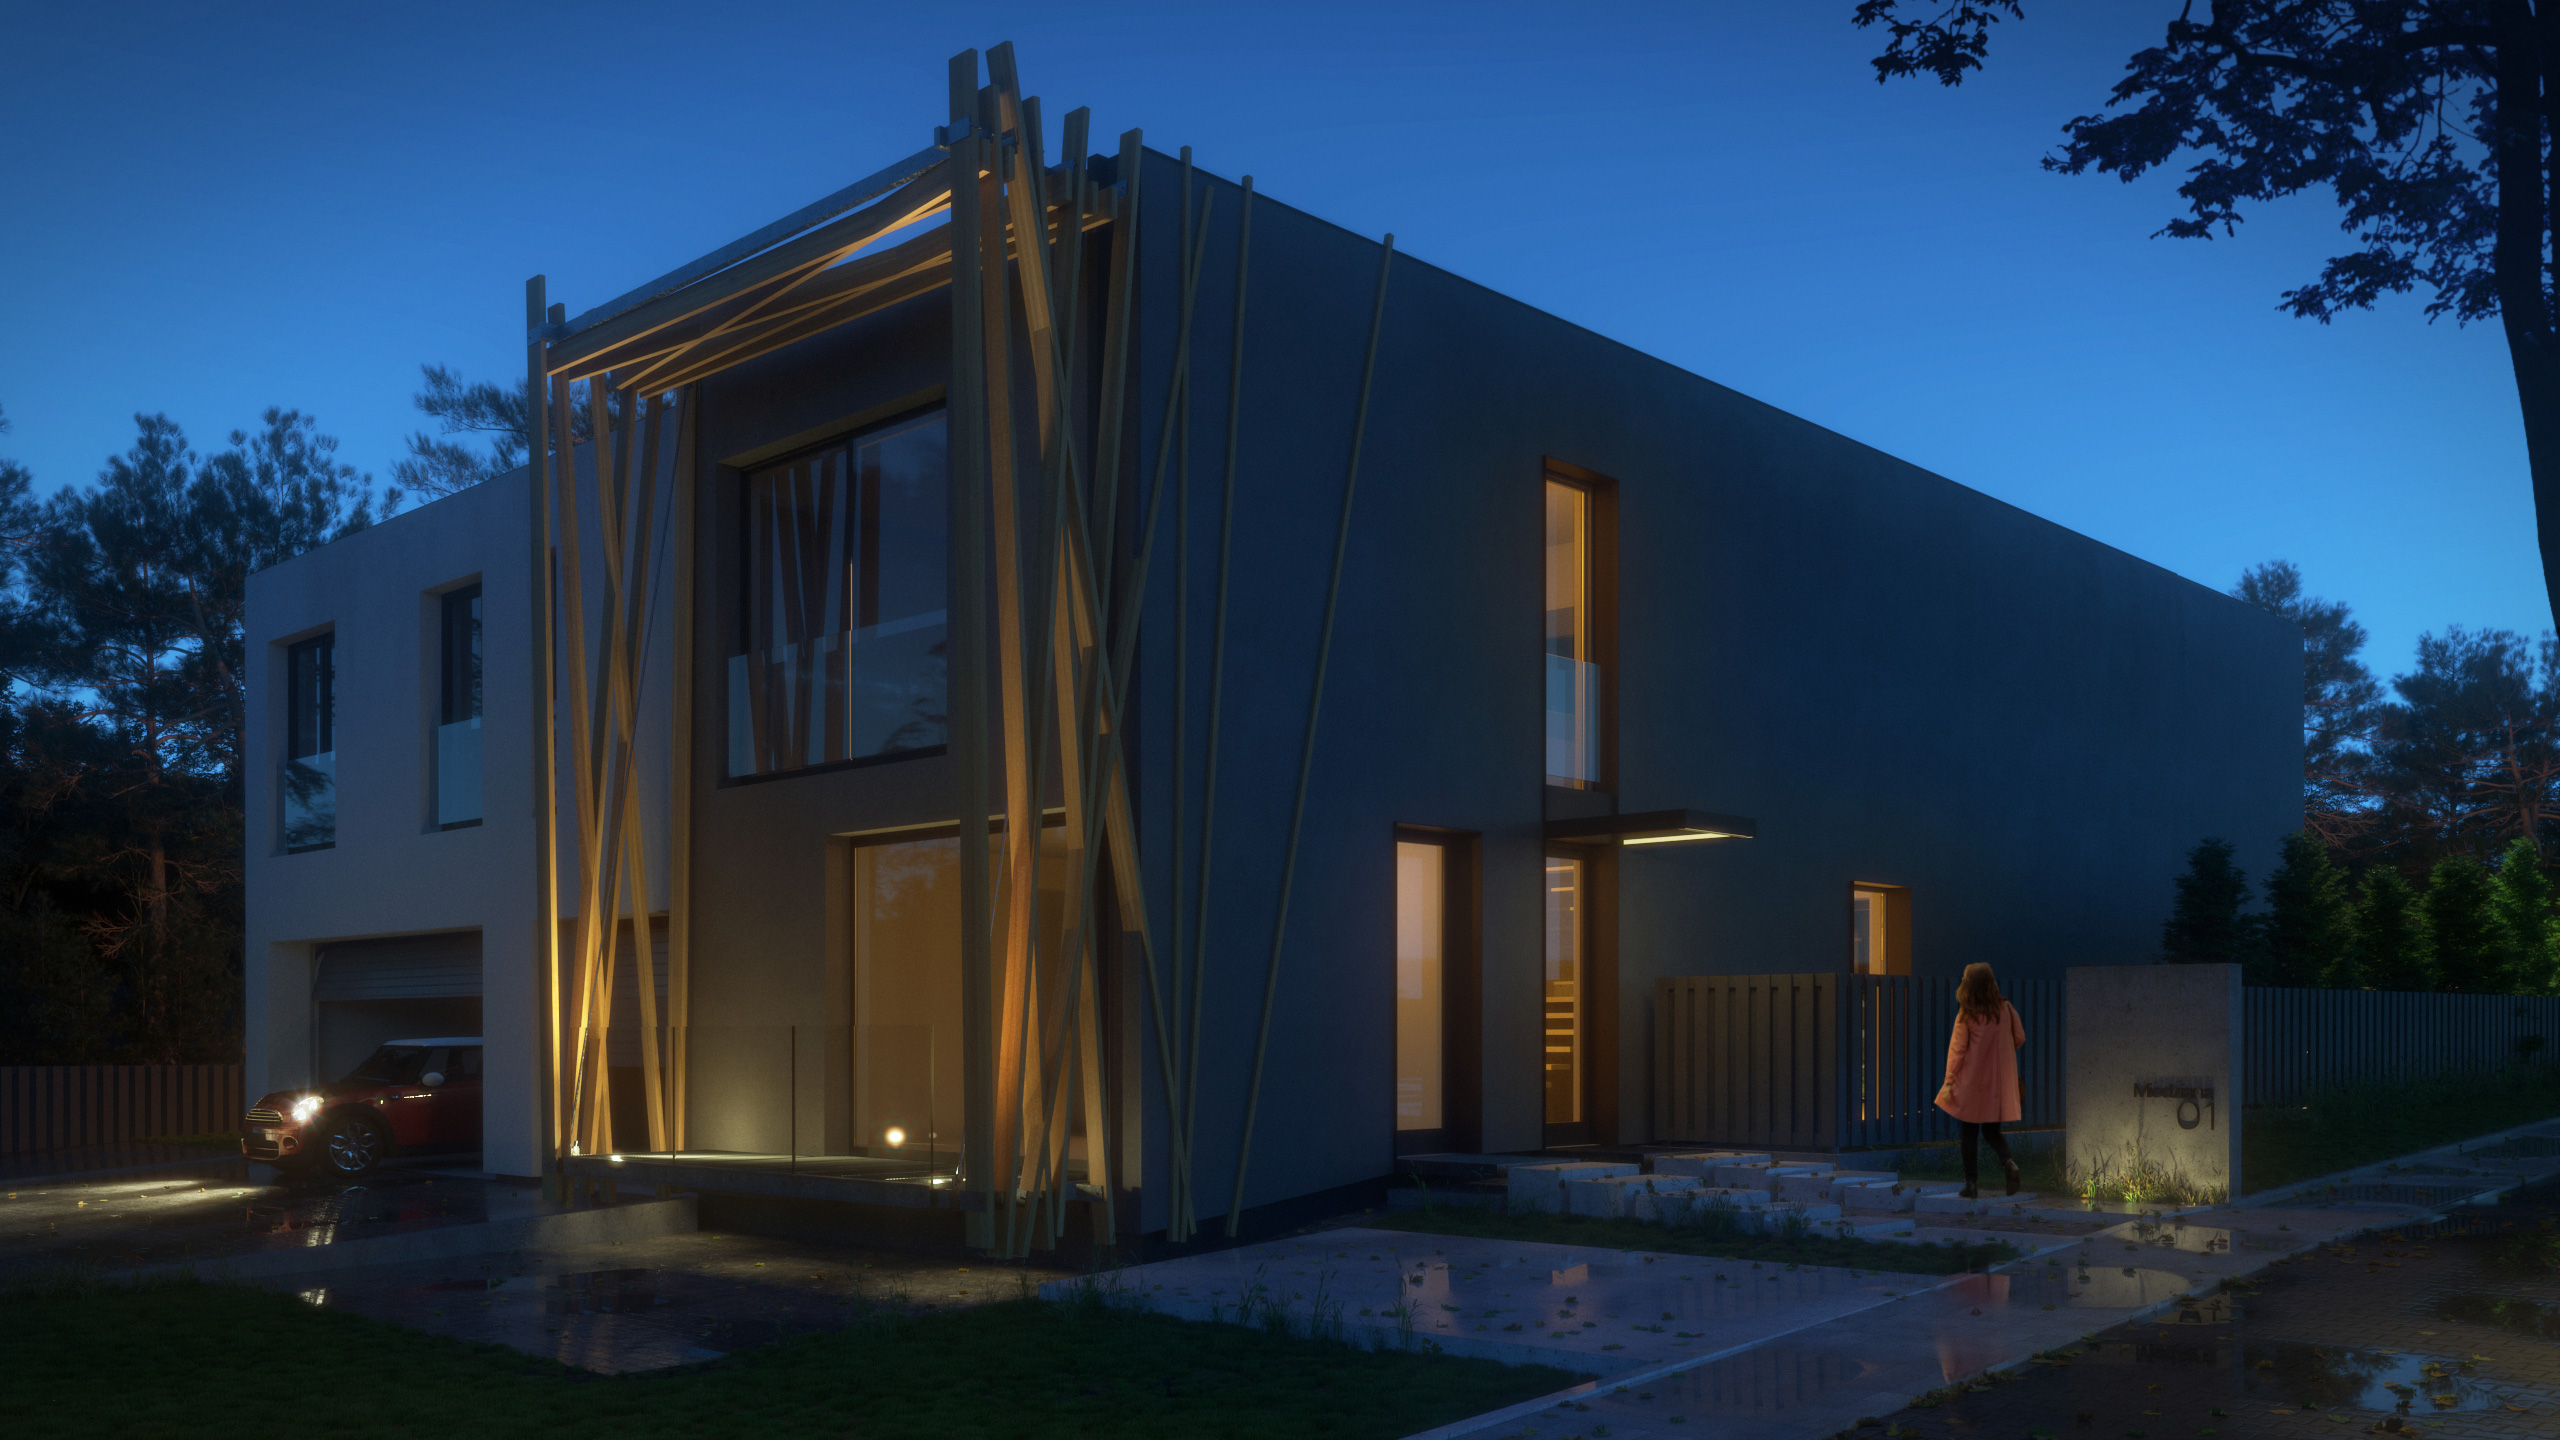 Visualization of a detached house by night - exterior